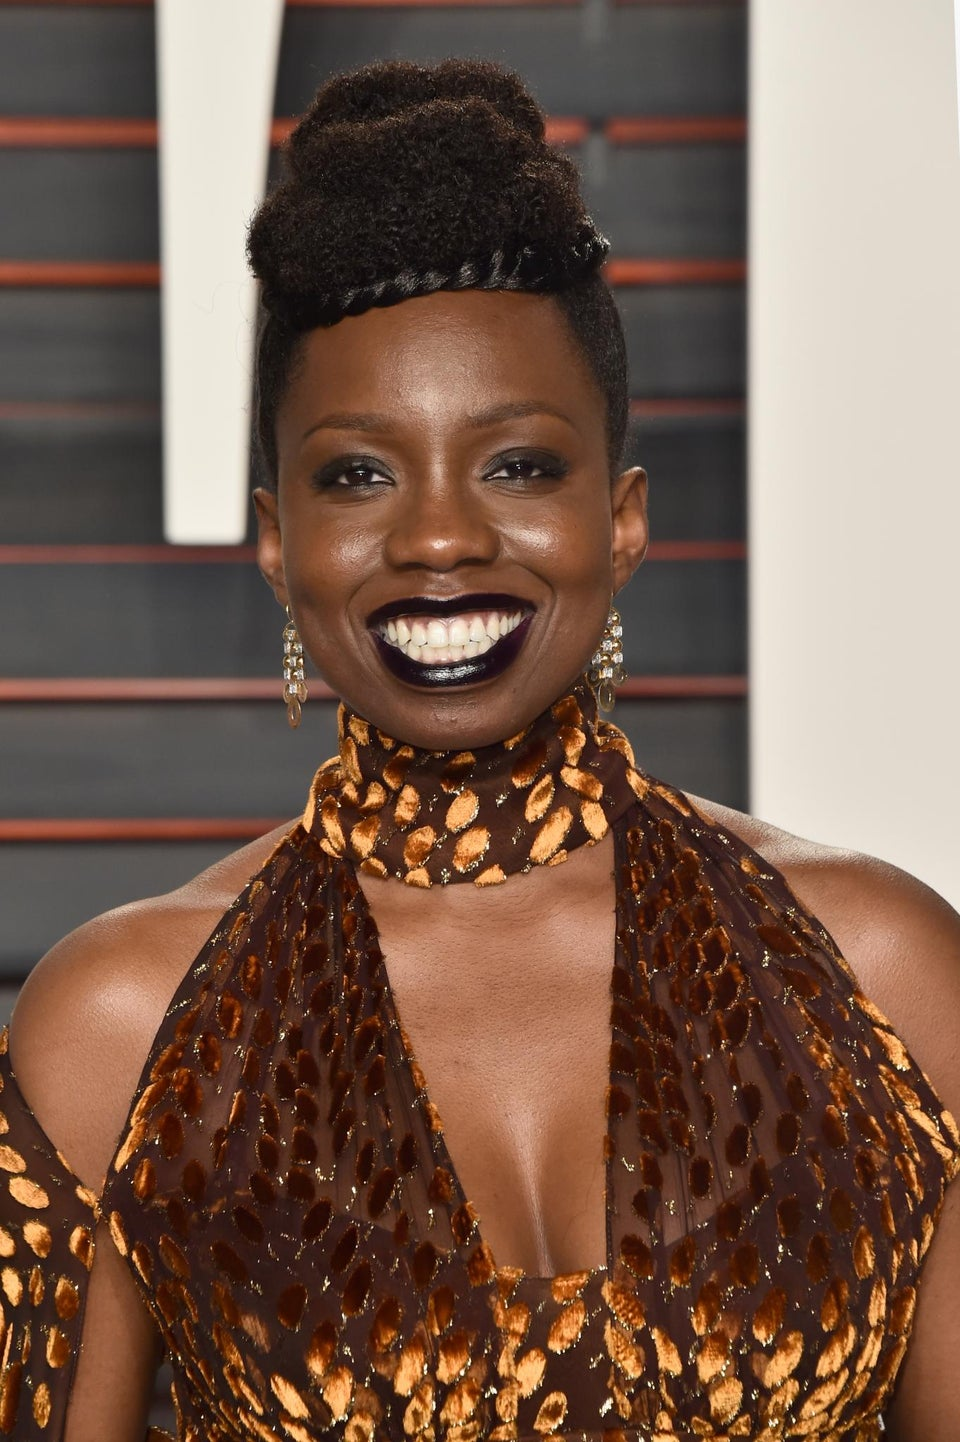 Get Adepero Oduye's Intricately Twisted Crown From The Oscars